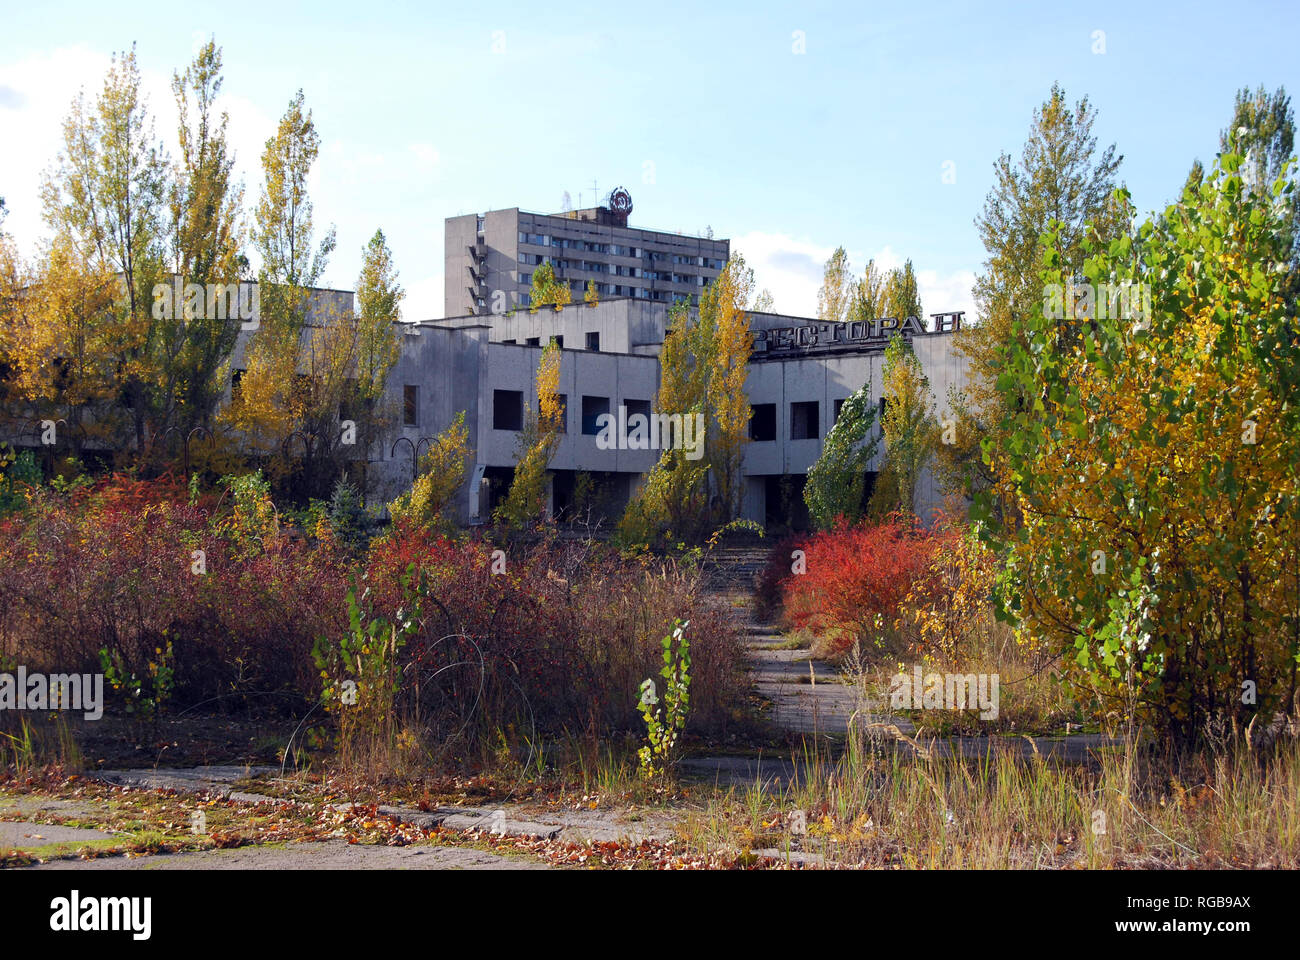 The abandoned streets and buildings in the town of Pripyat in the Chernobyl Exclusion Zone, Ukraine Stock Photo